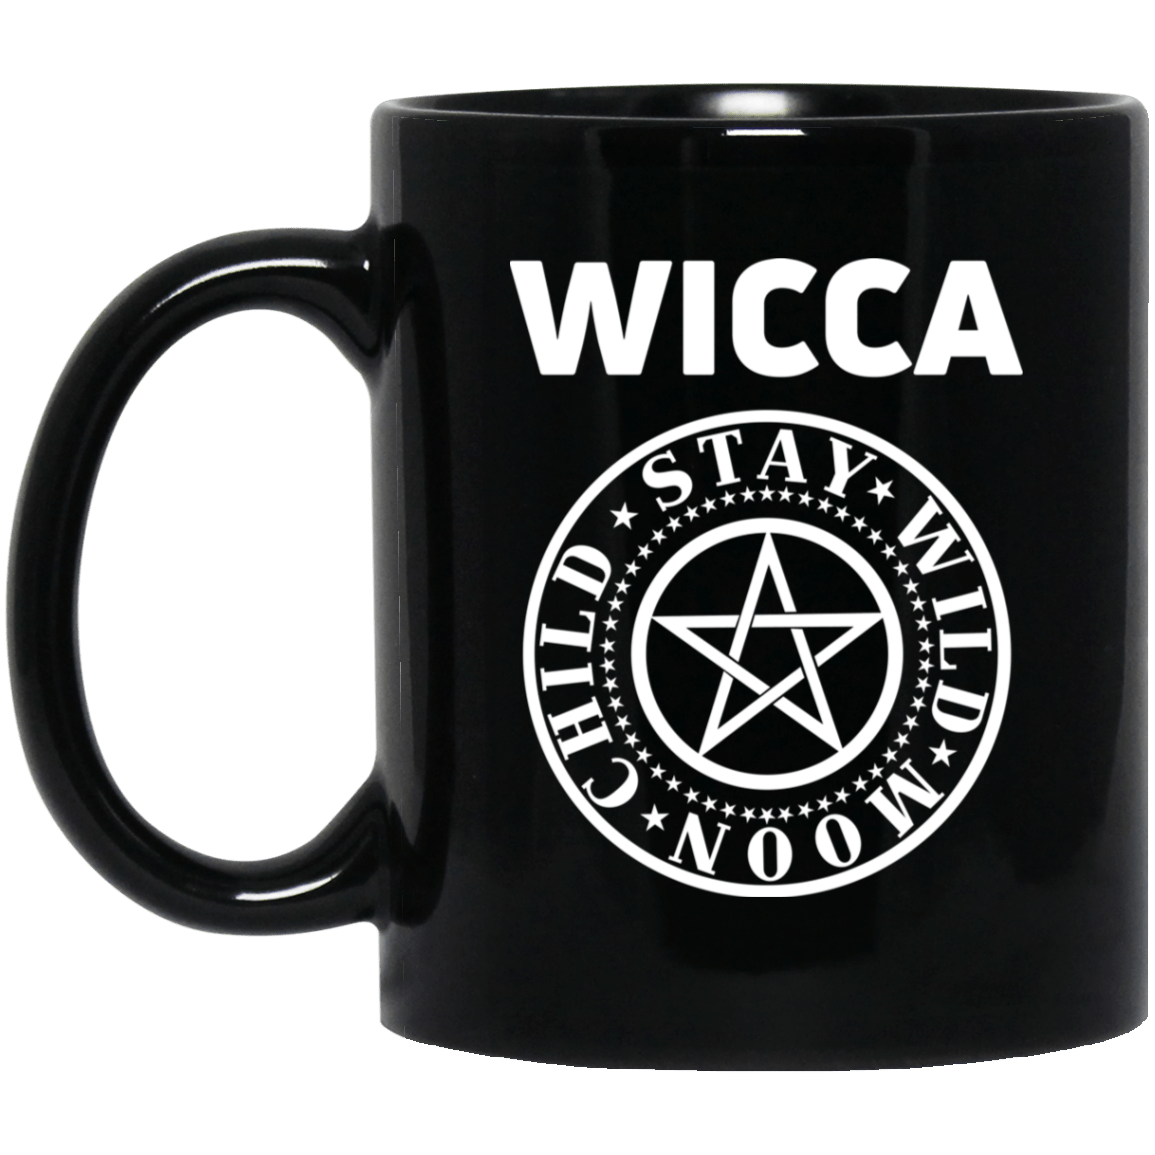 Wicca Child Stay Wild Moon Mug 1065-10181-88767856-49307 - Tee Ript